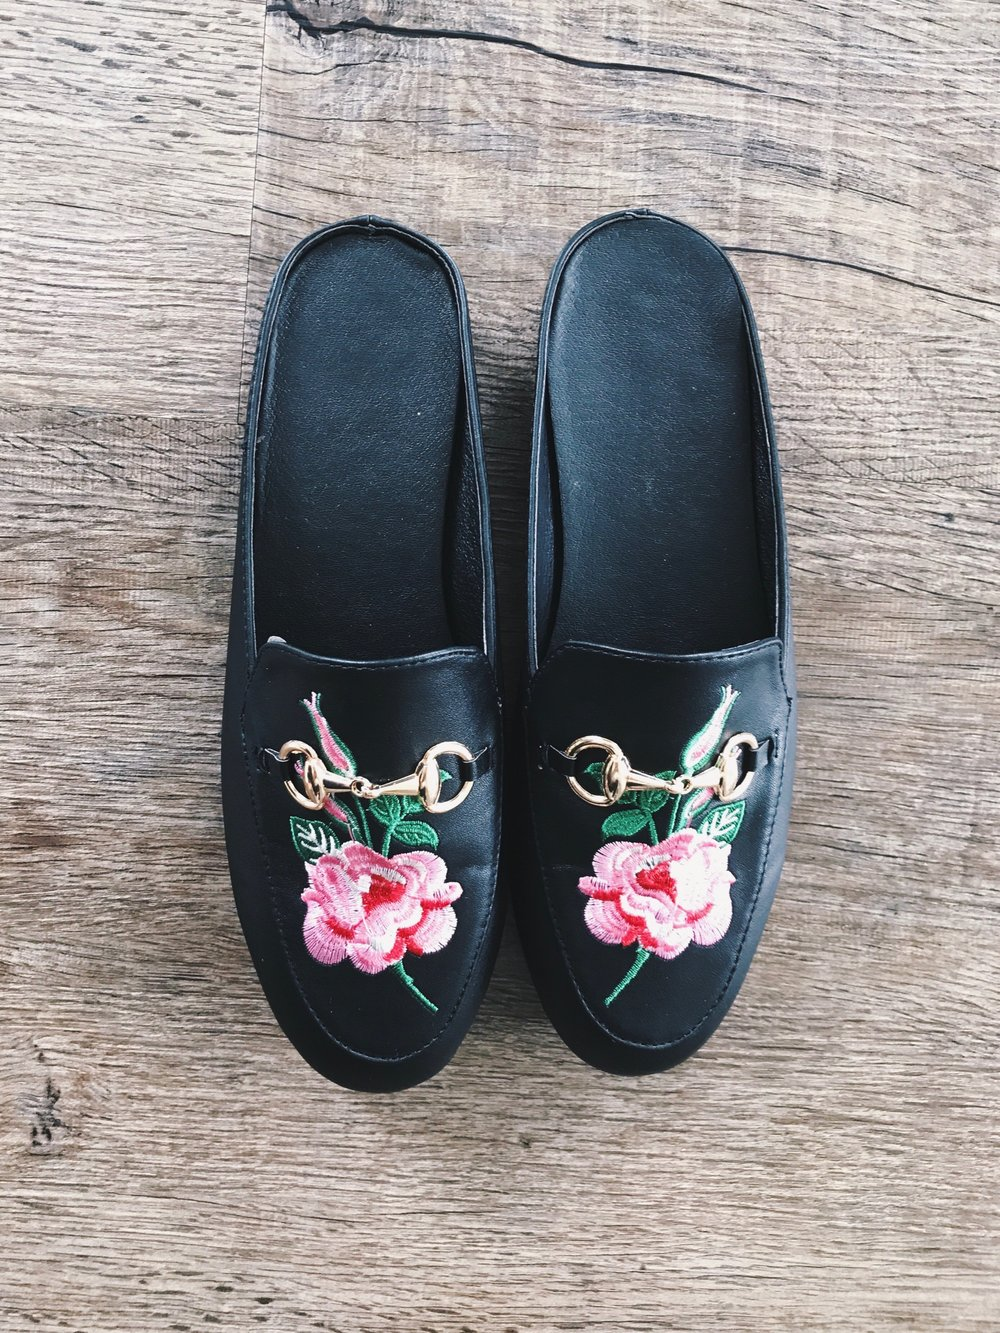 I'm sure I don't have to explain what these  Black Faux Leather Rose Embroidered Slip-on Shoes  ($32) are replicas of, but for those who haven't been on Instagram,  Gucci's Princetown Leather Loafers  ($795) are about as close to cult status now as anything. The leather quality is, as expected, the biggest disparity between these and the real thing, but the buckle and the embroidery are actually very spot-on. I'll wear these babies with some wide leg pants, a tank body suit, and a bomber for a hella comfortable weekend look.